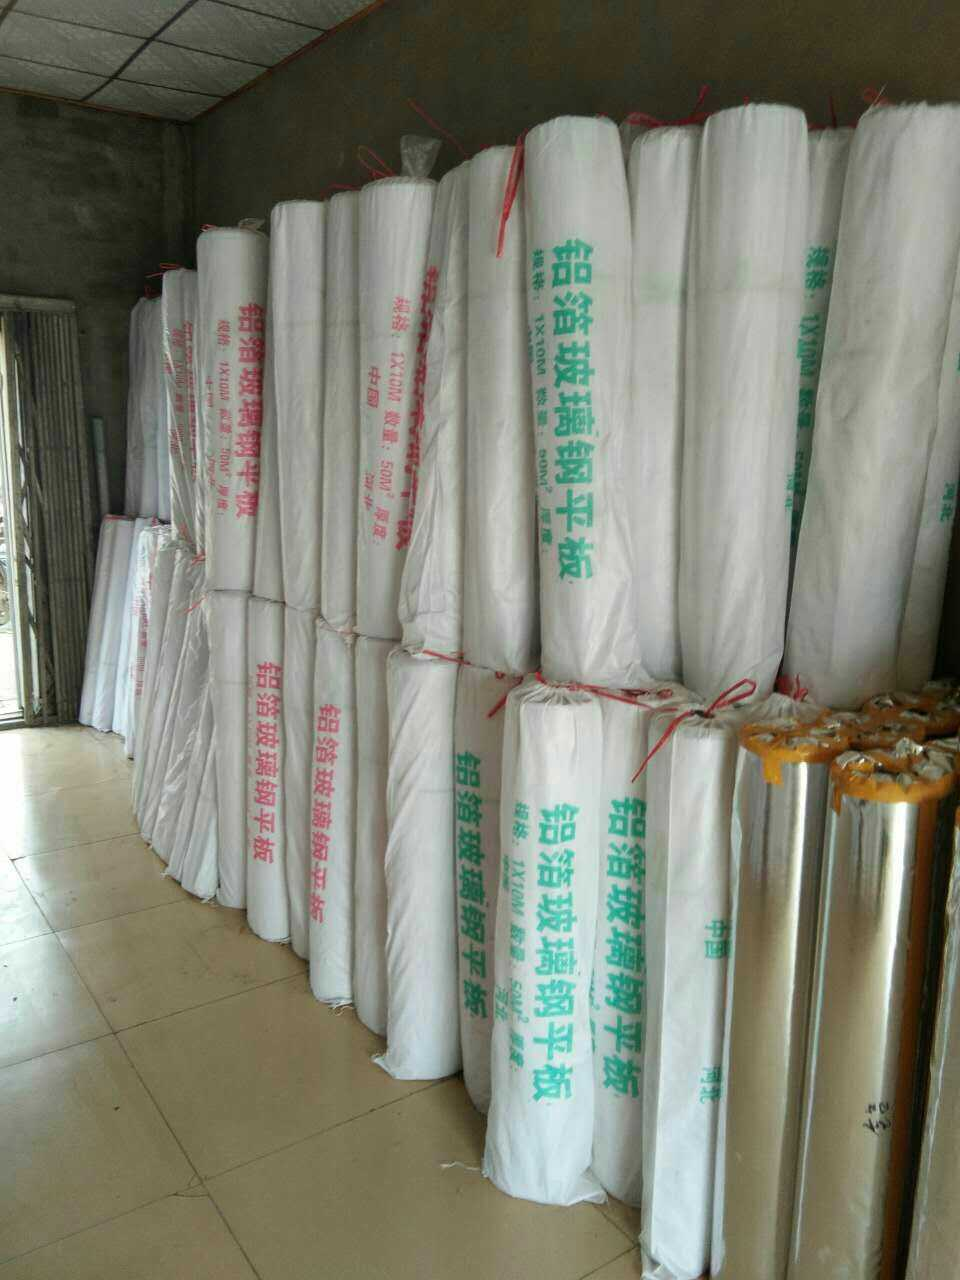 Glass fiber reinforced plastic pipeline insulation external protective material, aluminum foil glass fiber reinforced plastic plate insulation shell, thermal insulation skin